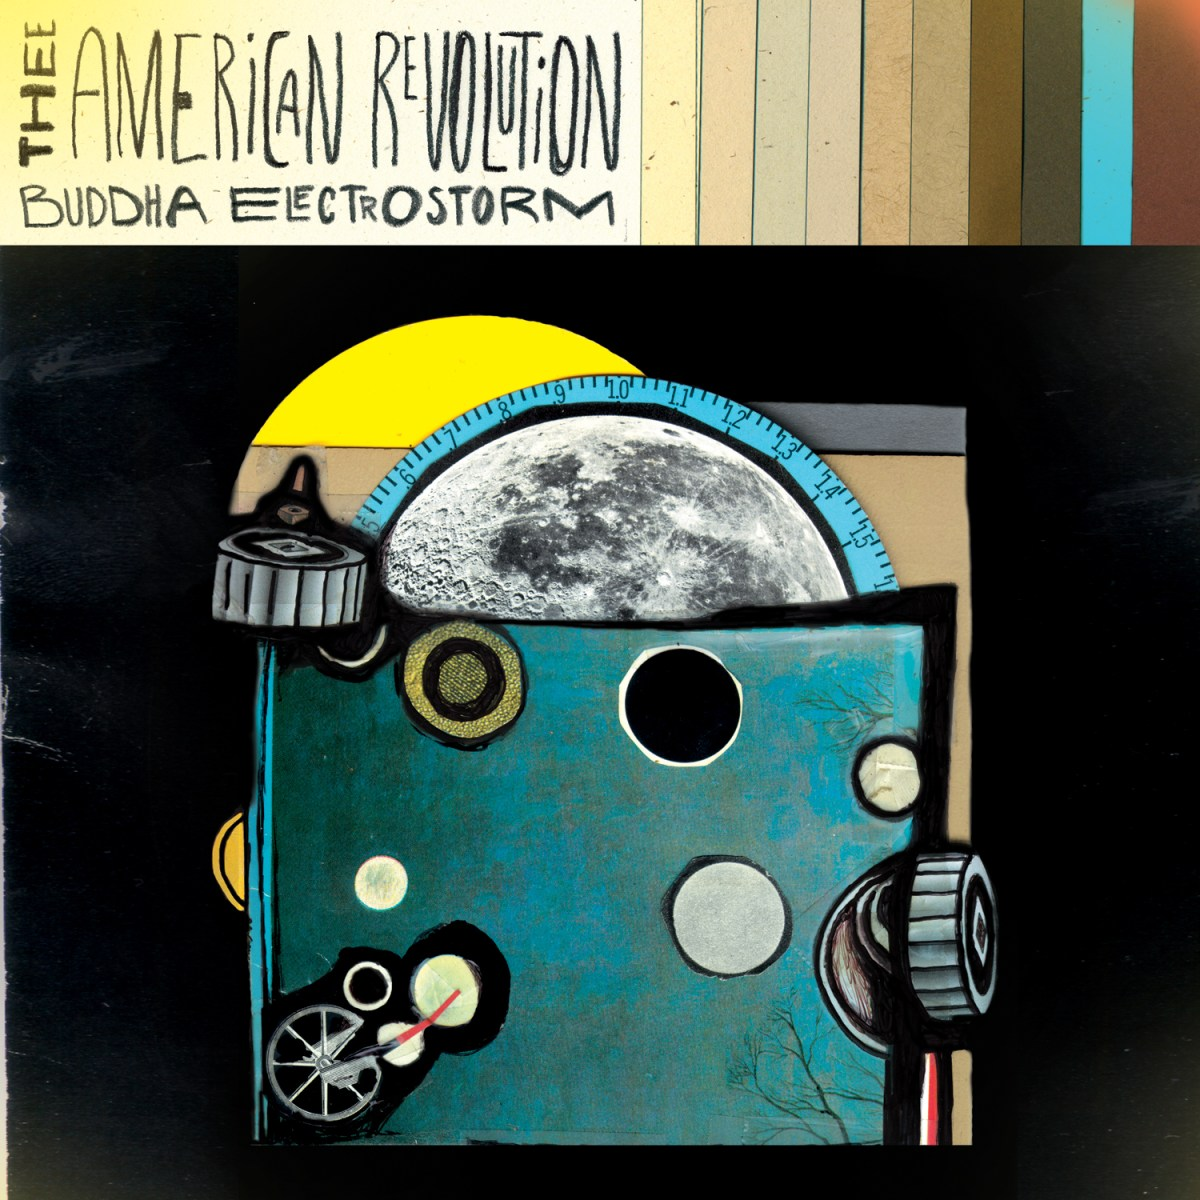 Thee American Revolution Buddha Electrostorm Cd Fire